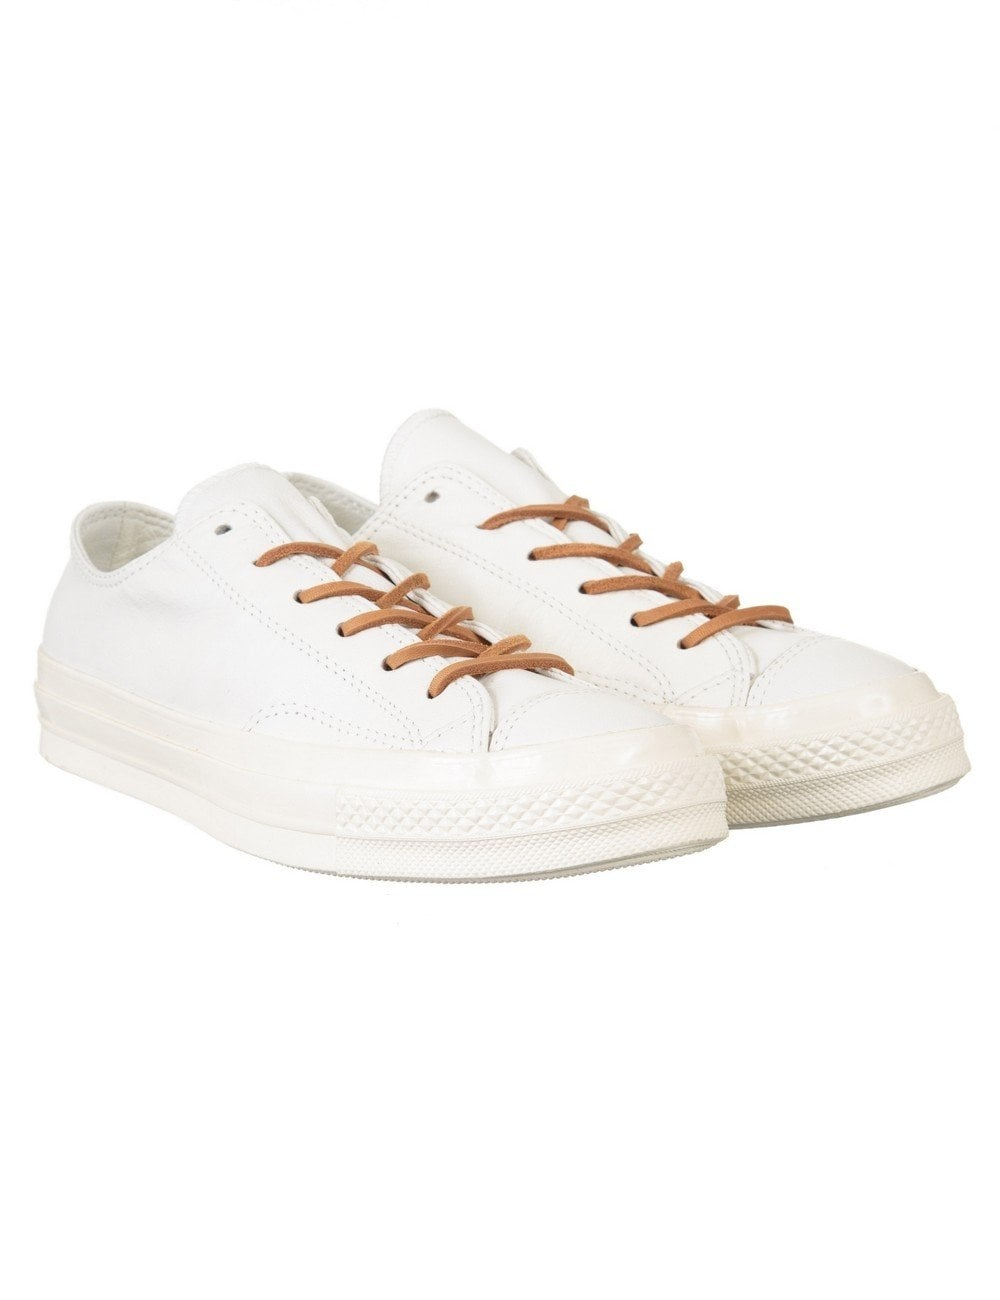 Chuck Taylor 70s Ox Leather Shoes - Egret/Tan